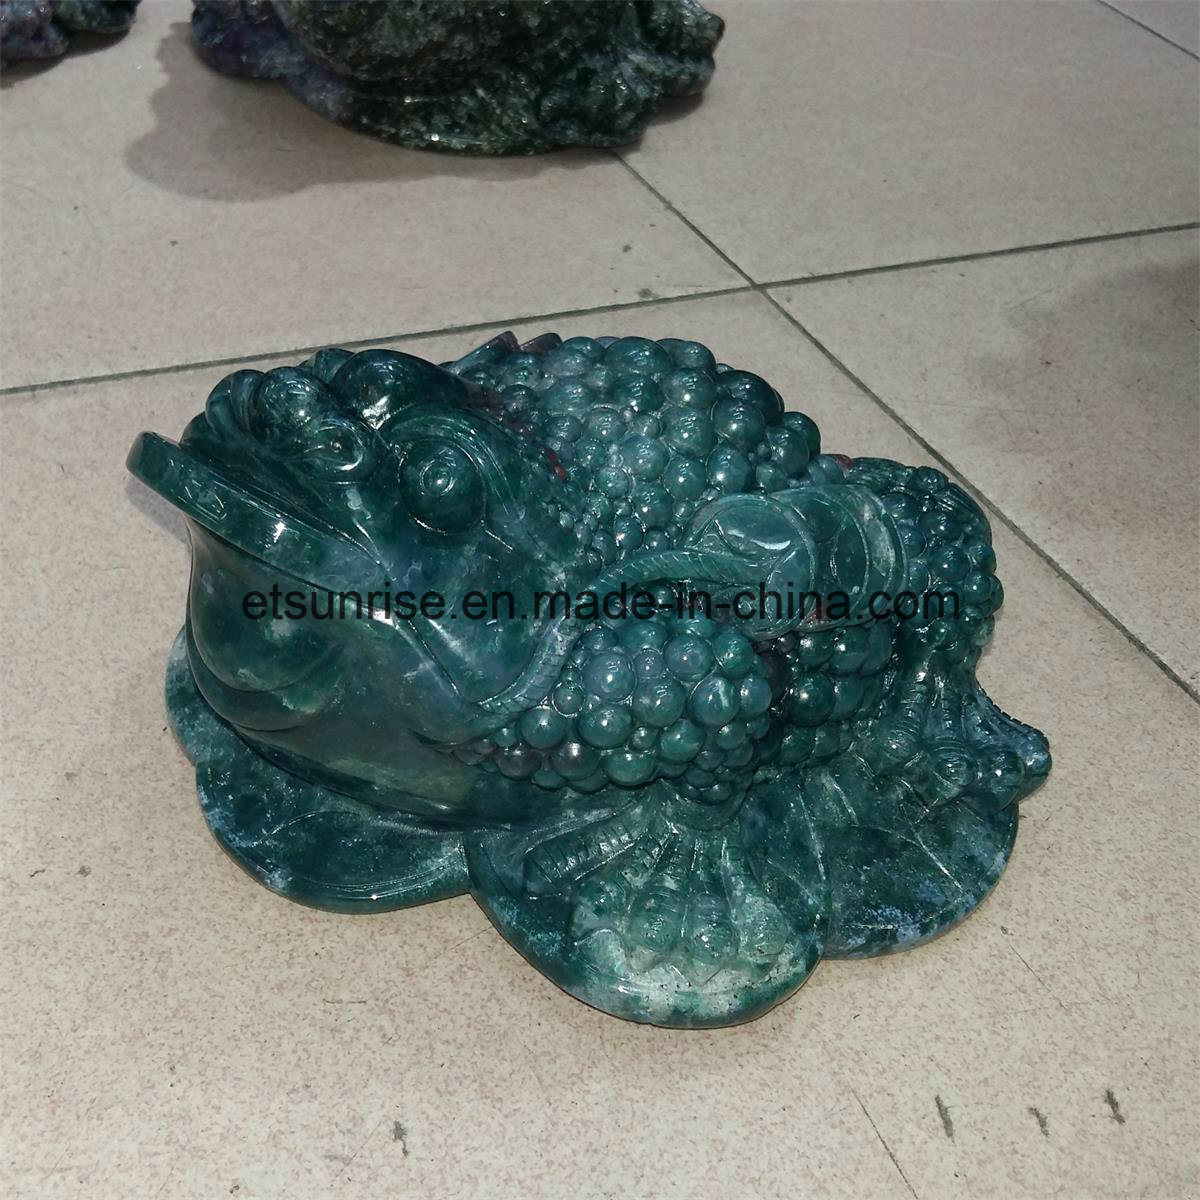 Semi Precious Stone Crystal Quartz Blood Stone Toad Carving Statue